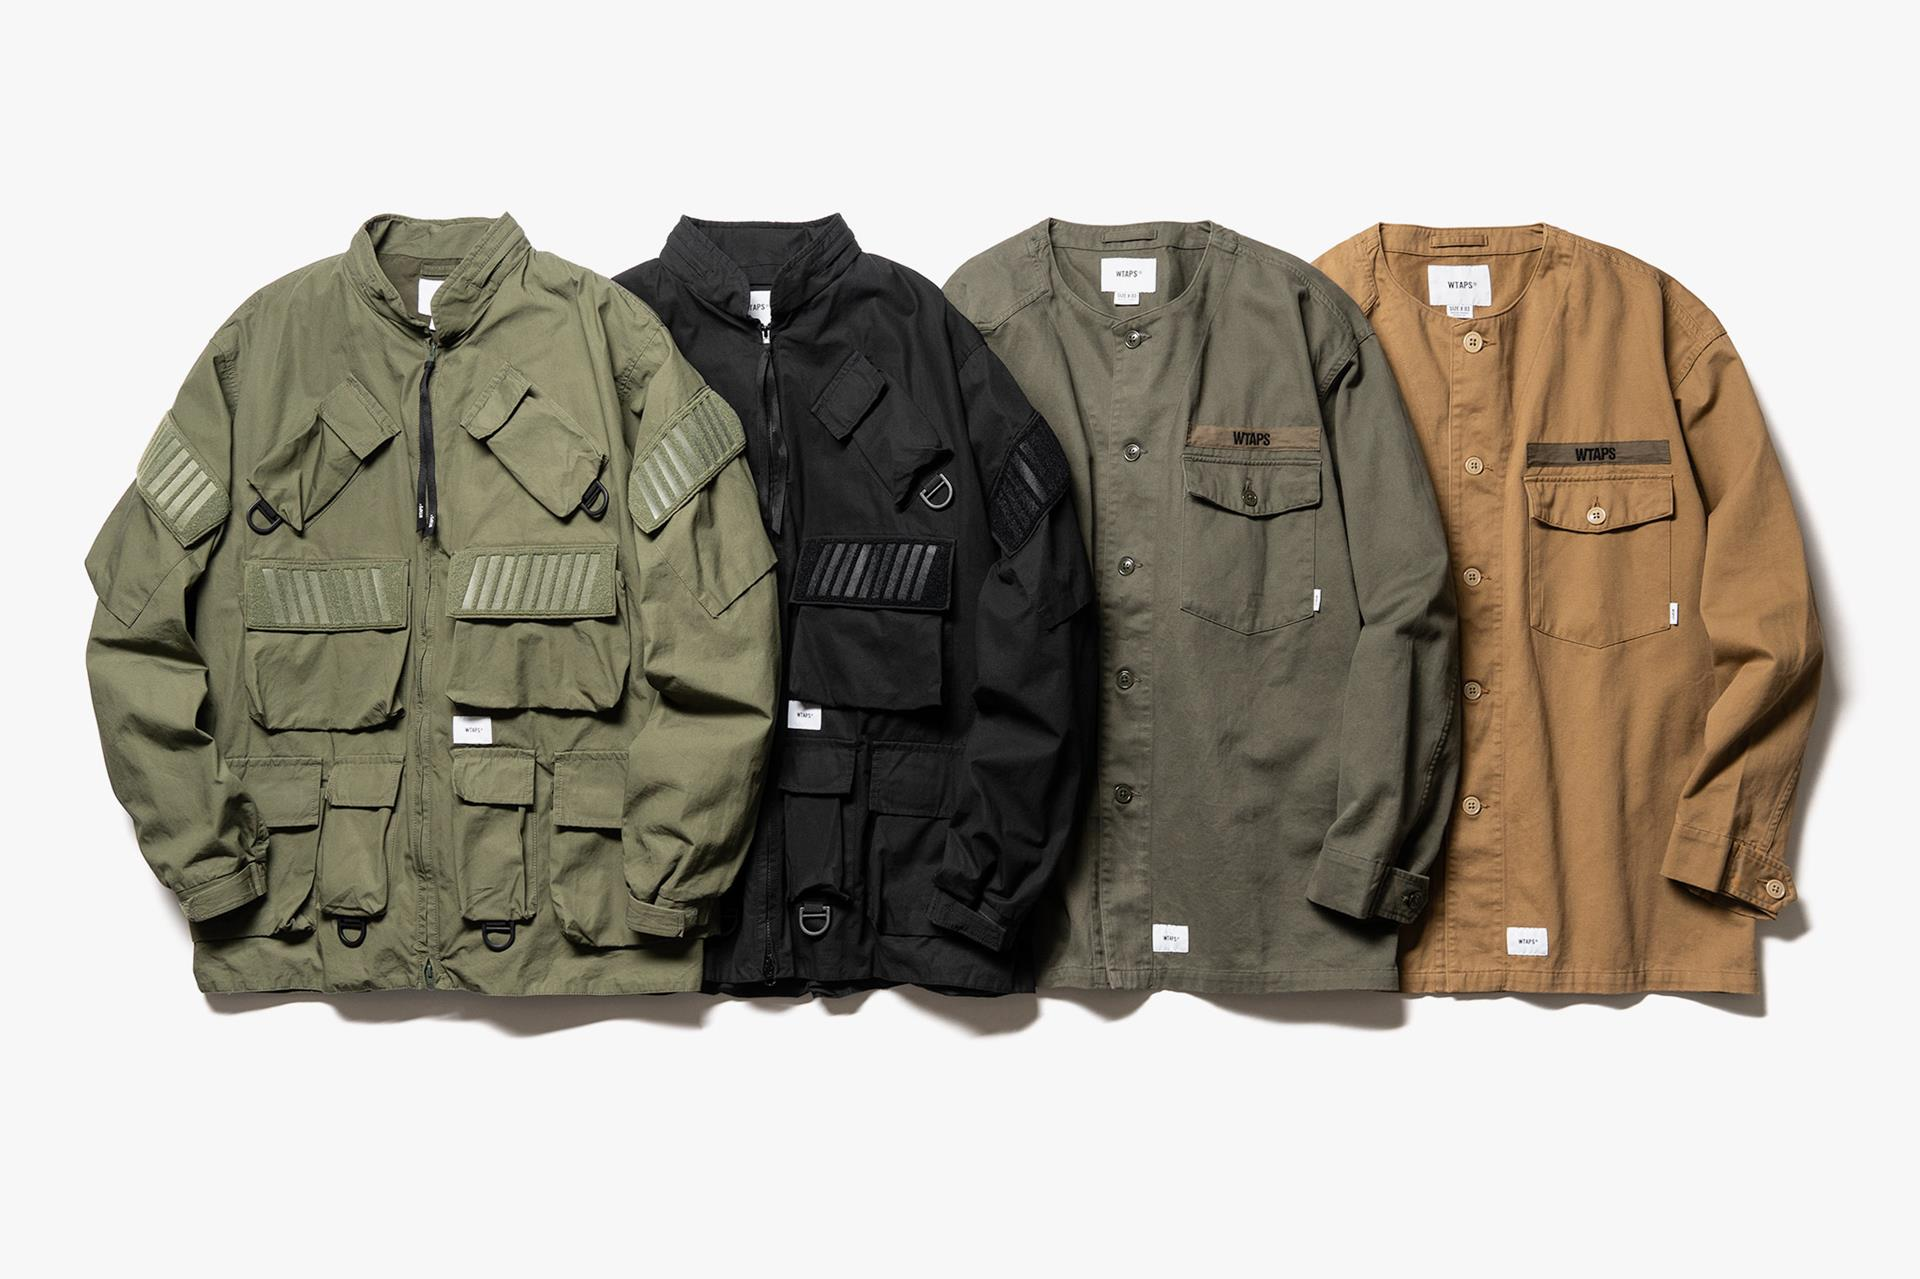 WTAPS FW19 First Delivery | Release Date: 10.17.19